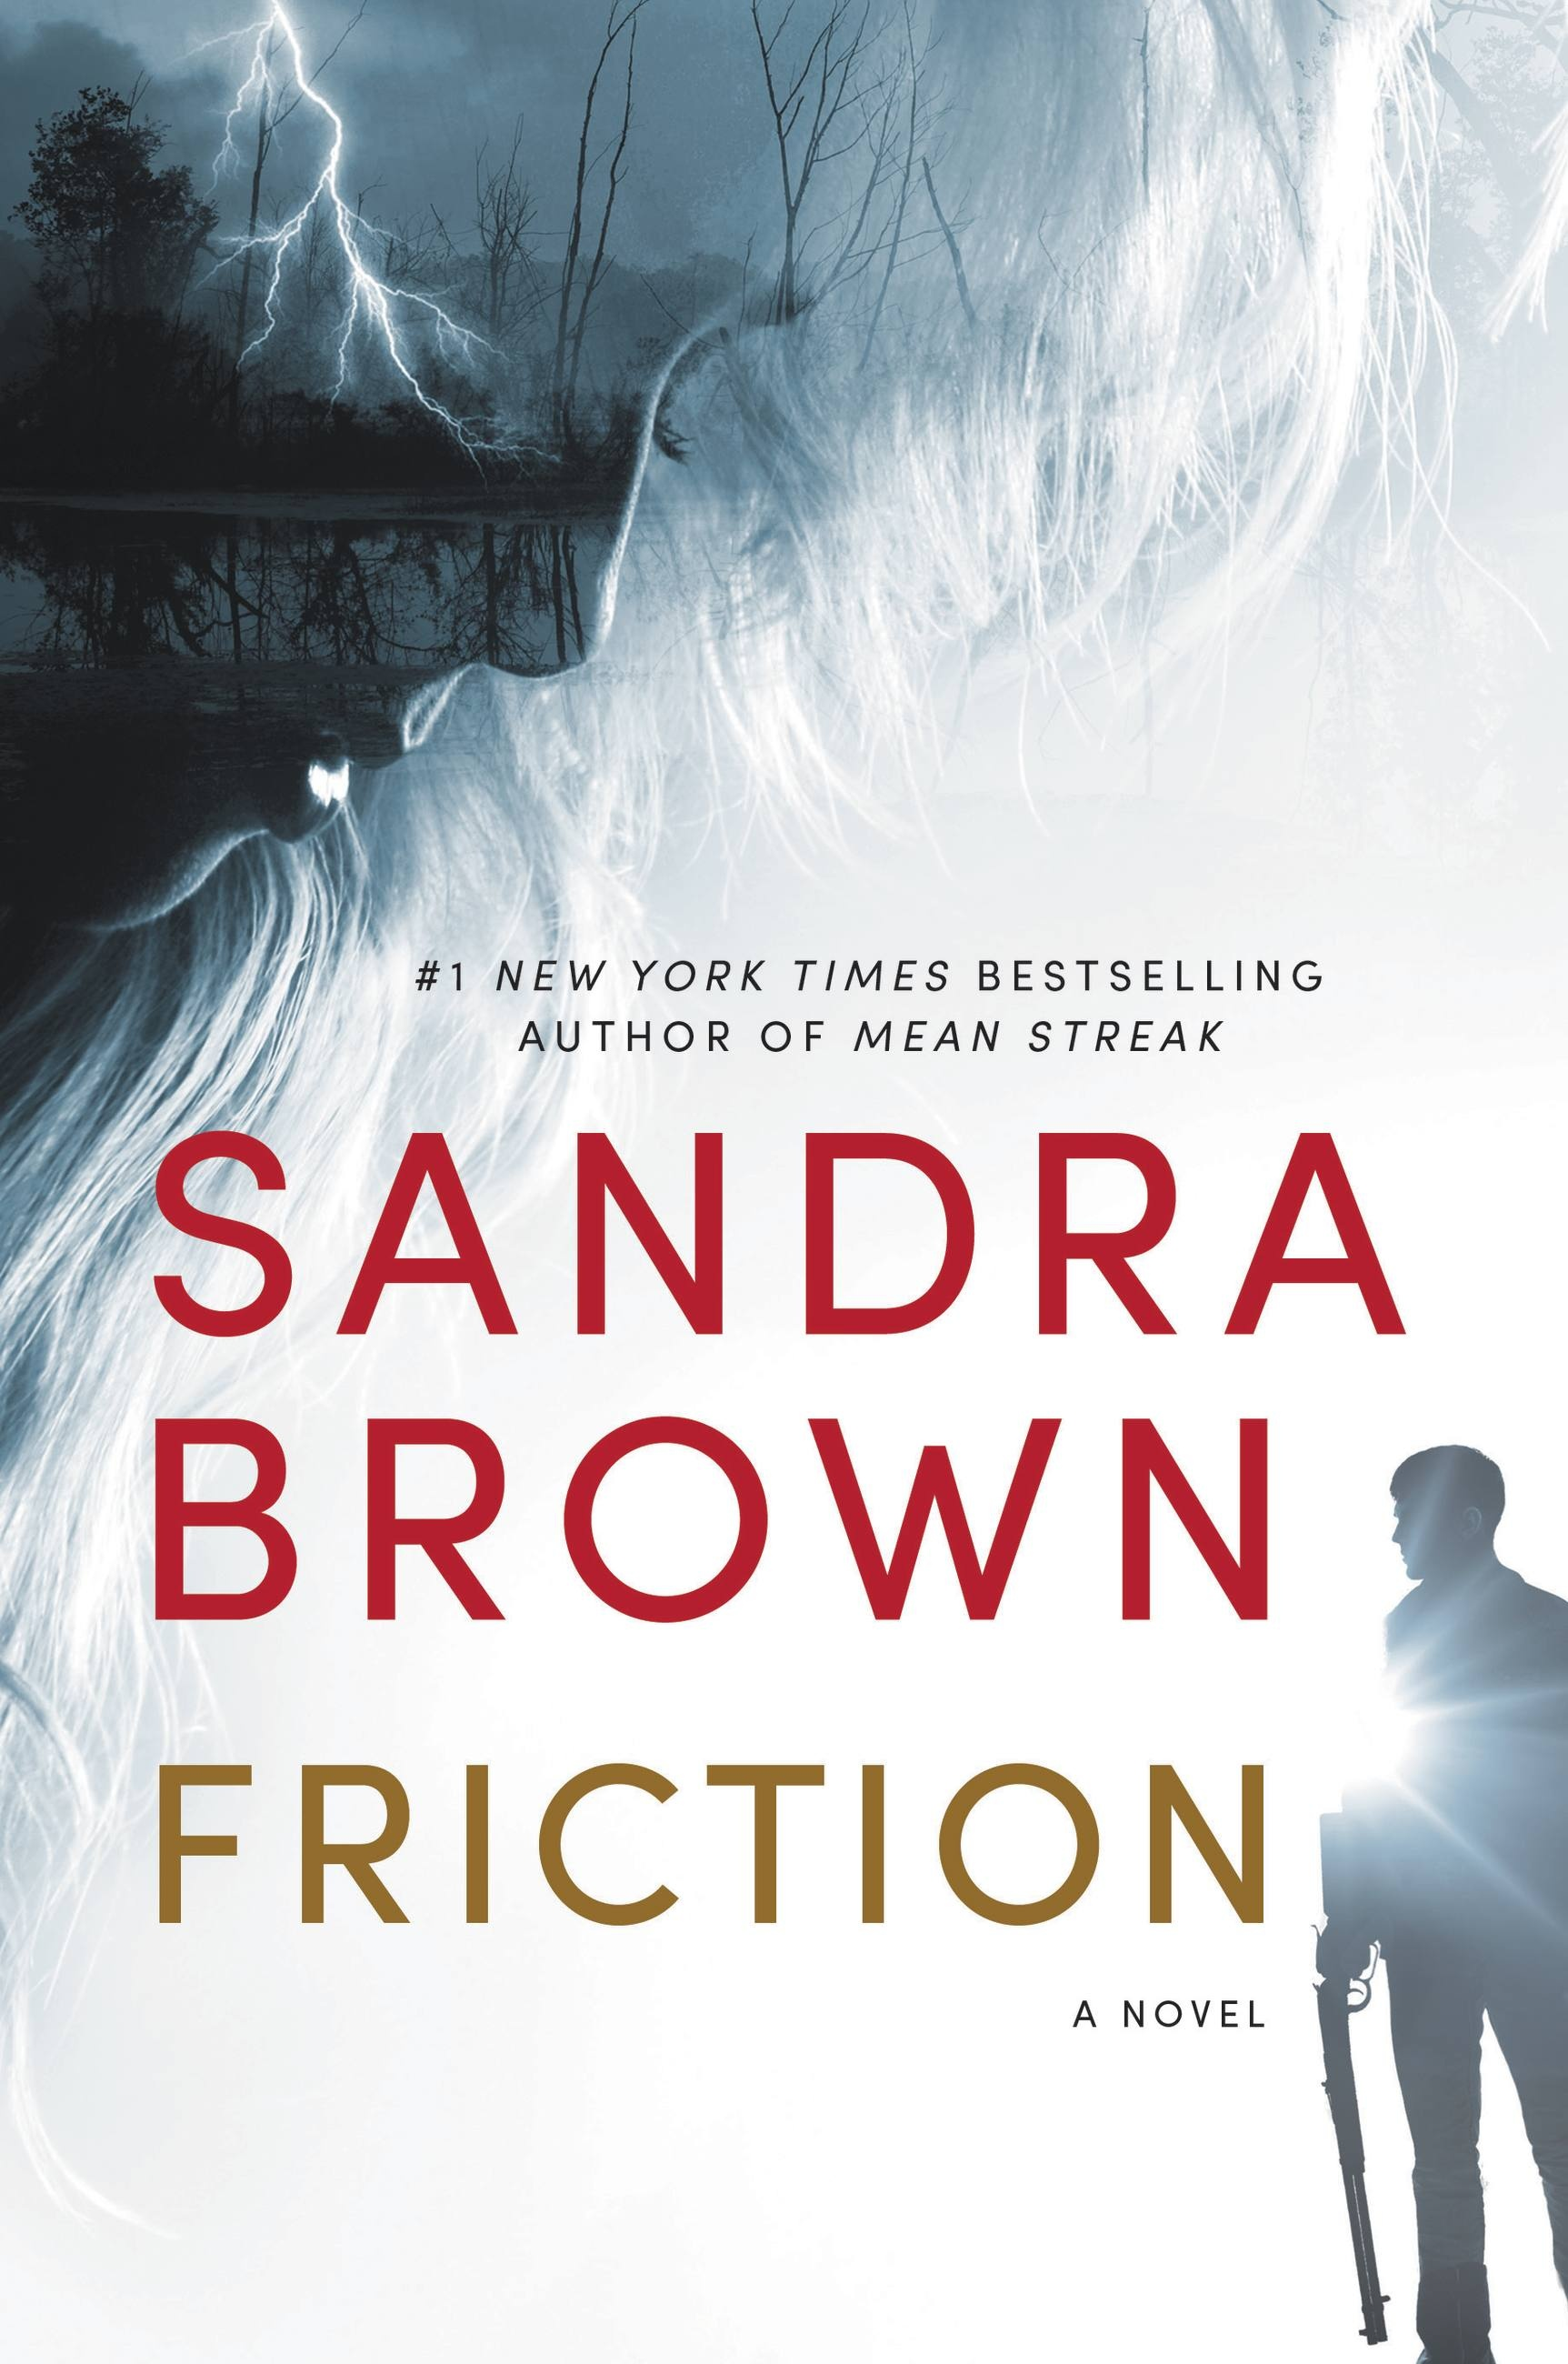 FrictionbySandraBrown